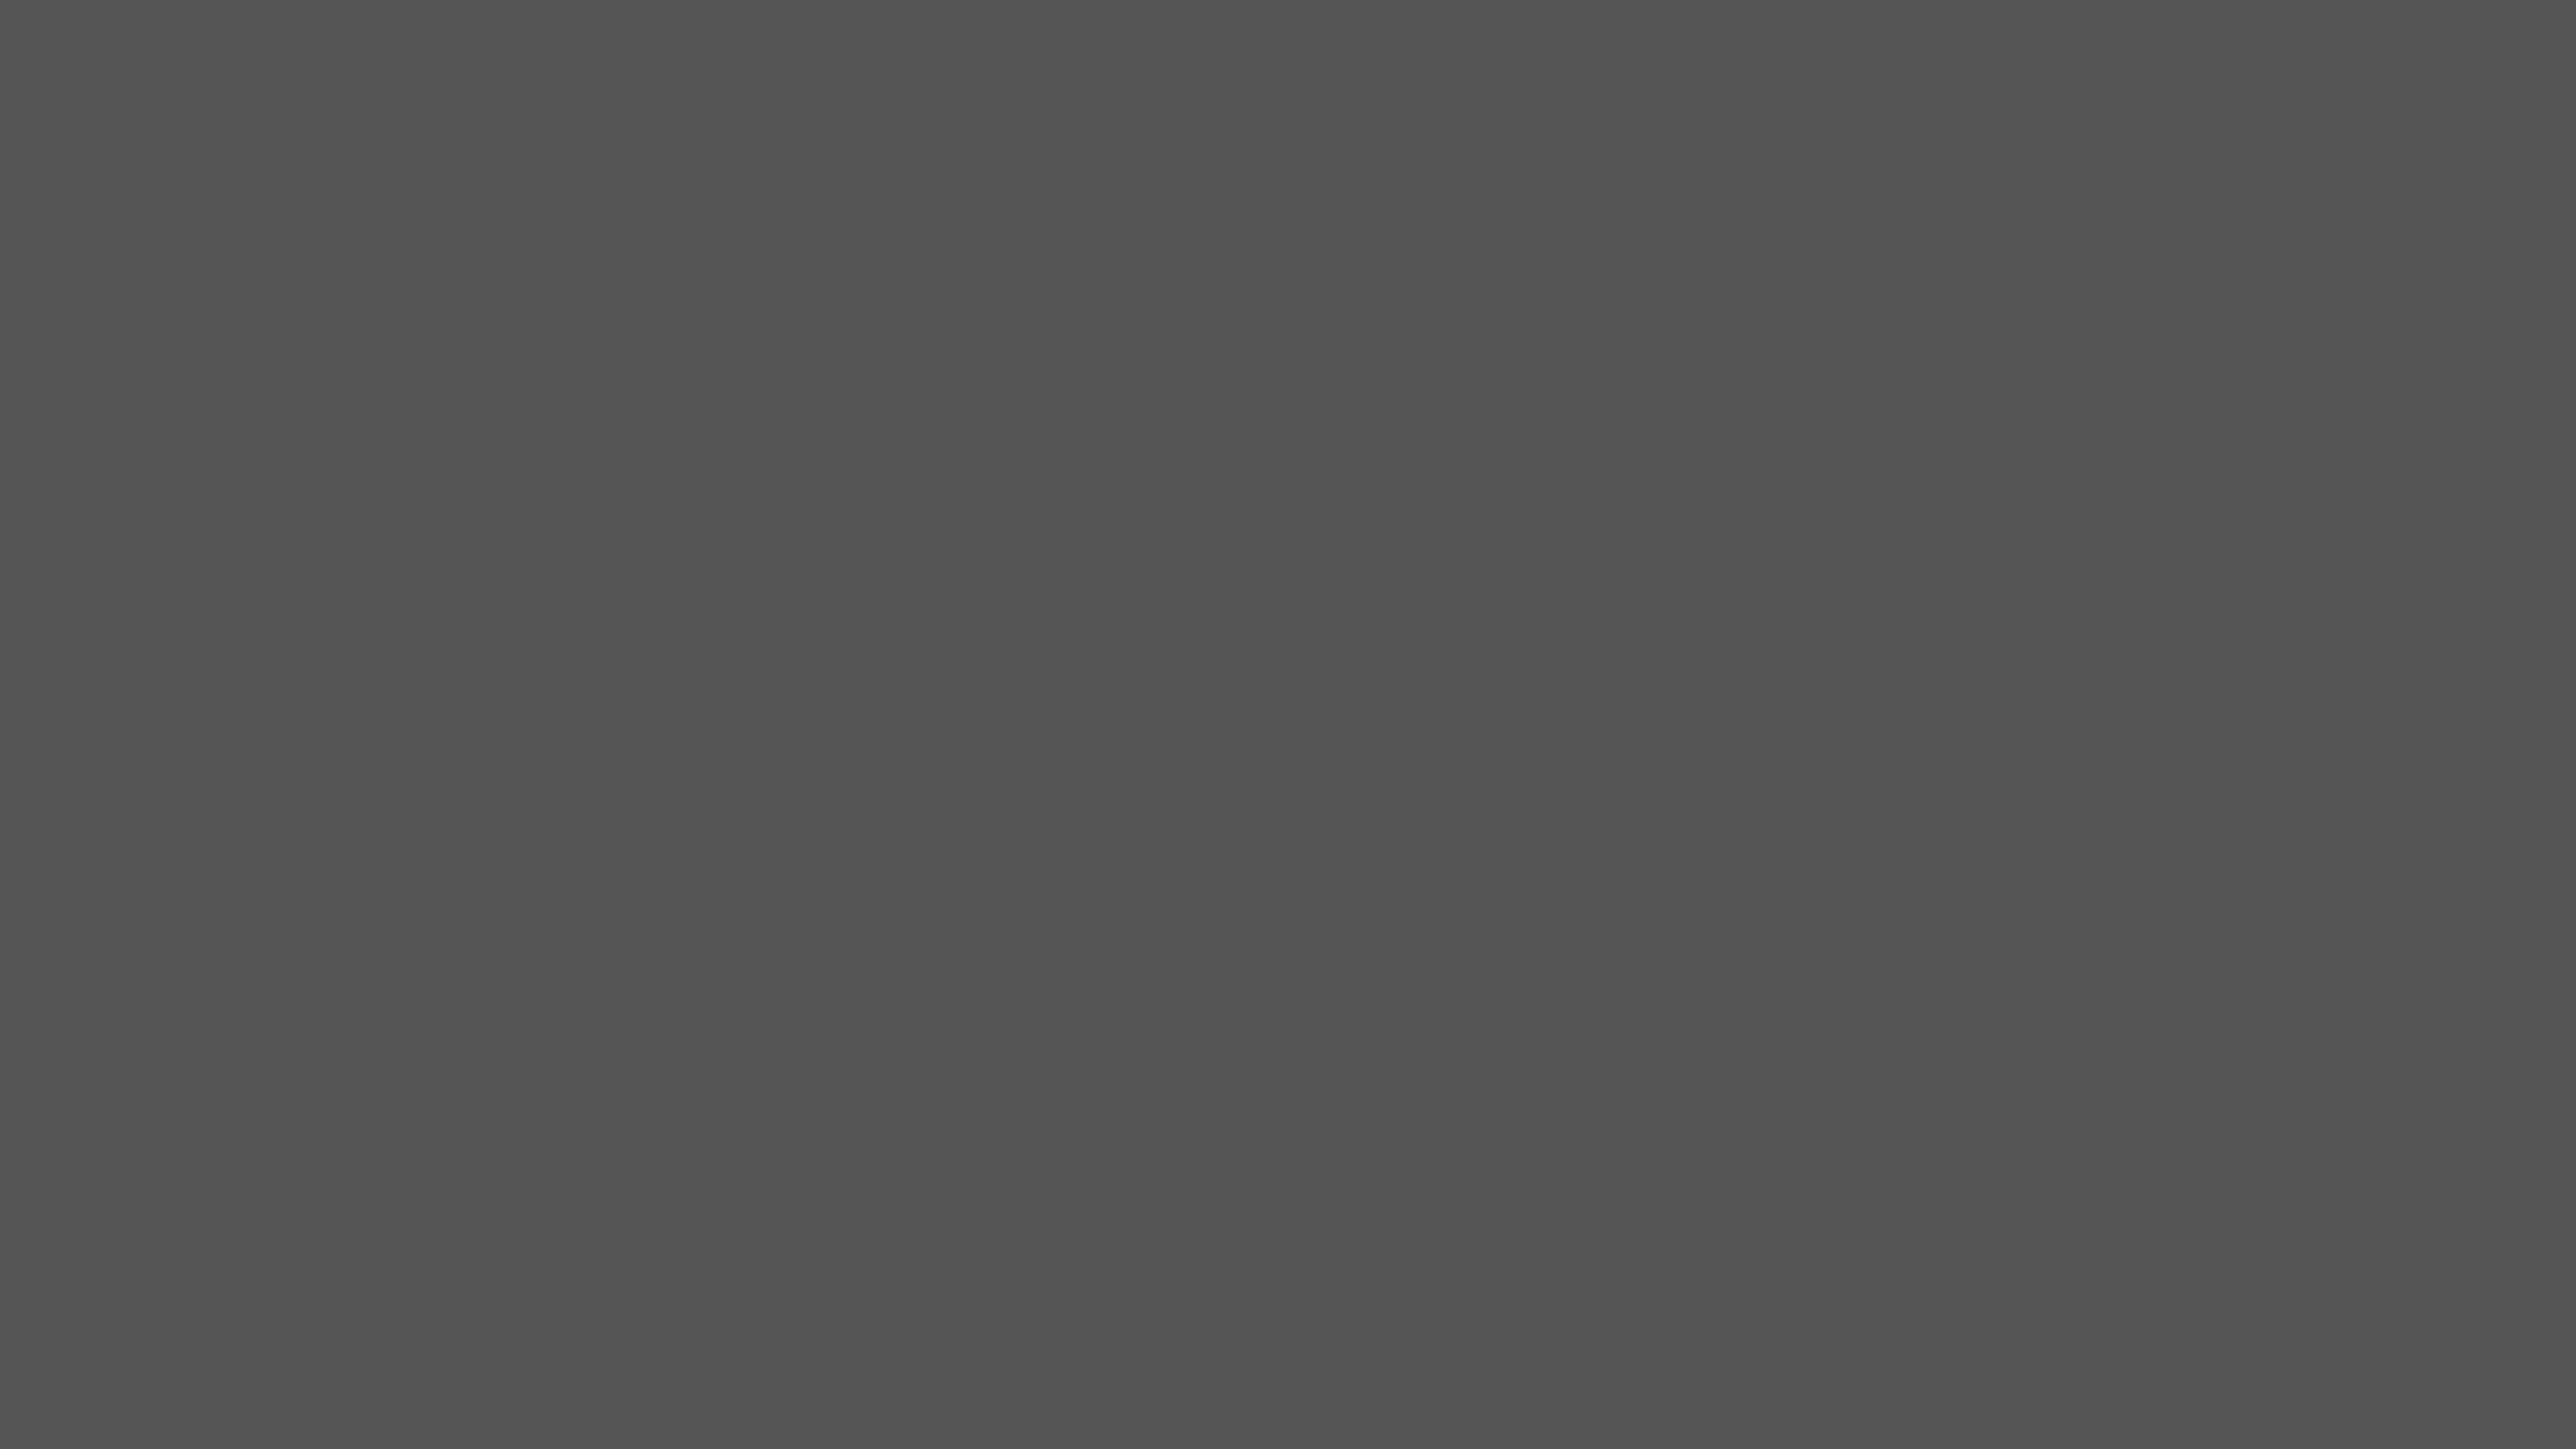 7680x4320 Davys Grey Solid Color Background